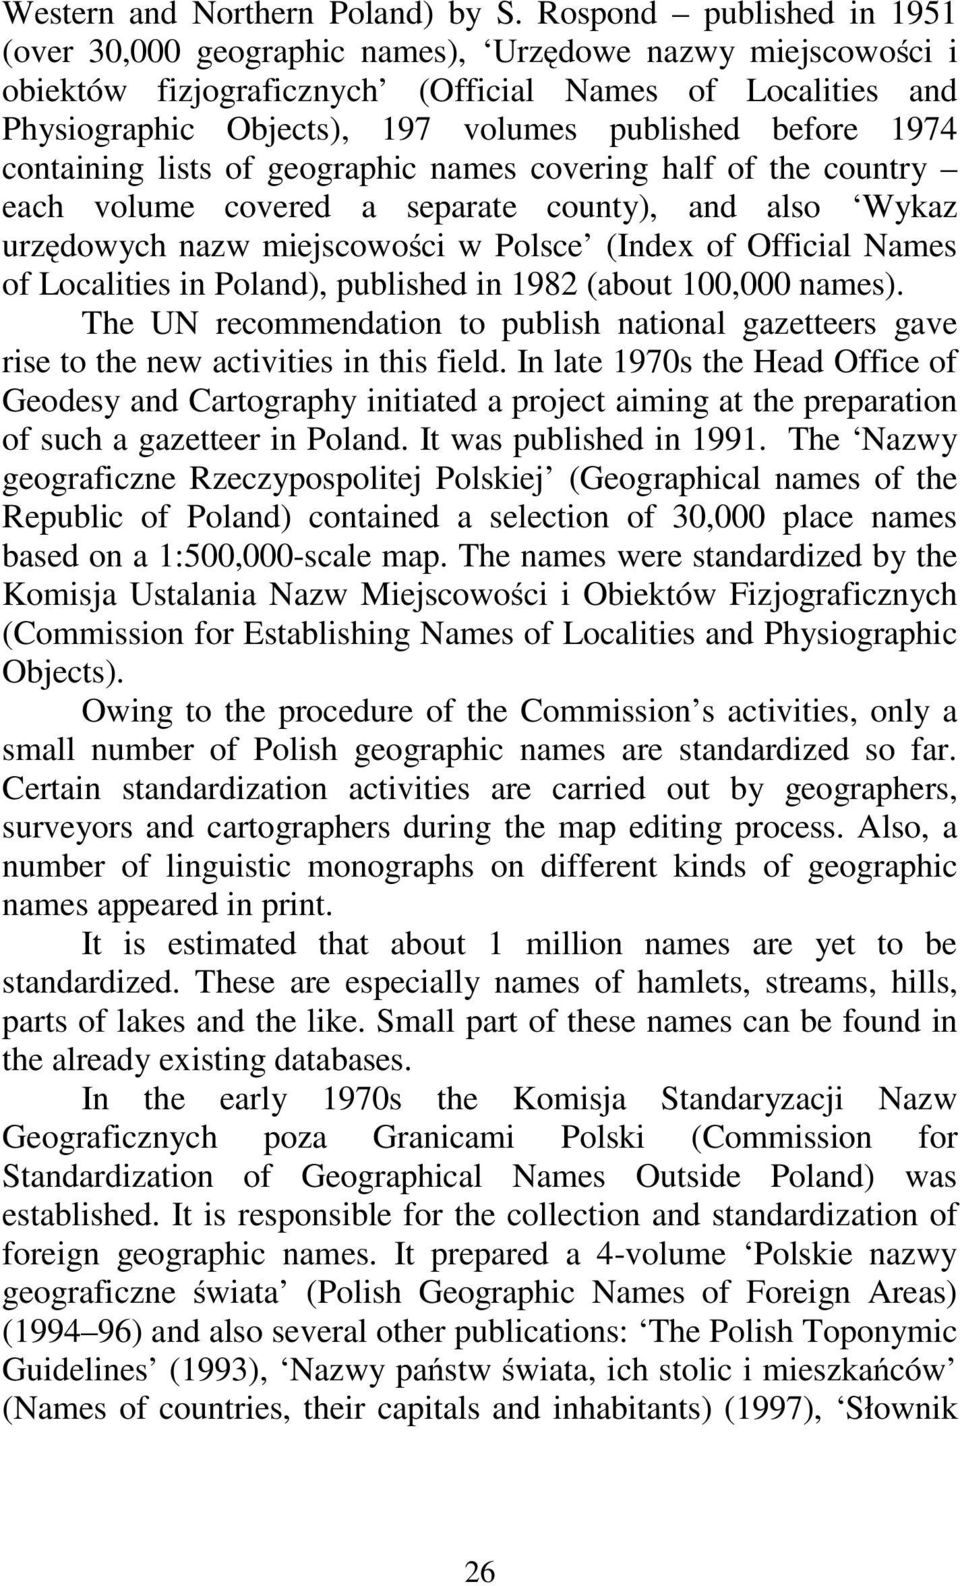 before 1974 containing lists of geographic names covering half of the country each volume covered a separate county), and also Wykaz urzędowych nazw miejscowości w Polsce (Index of Official Names of